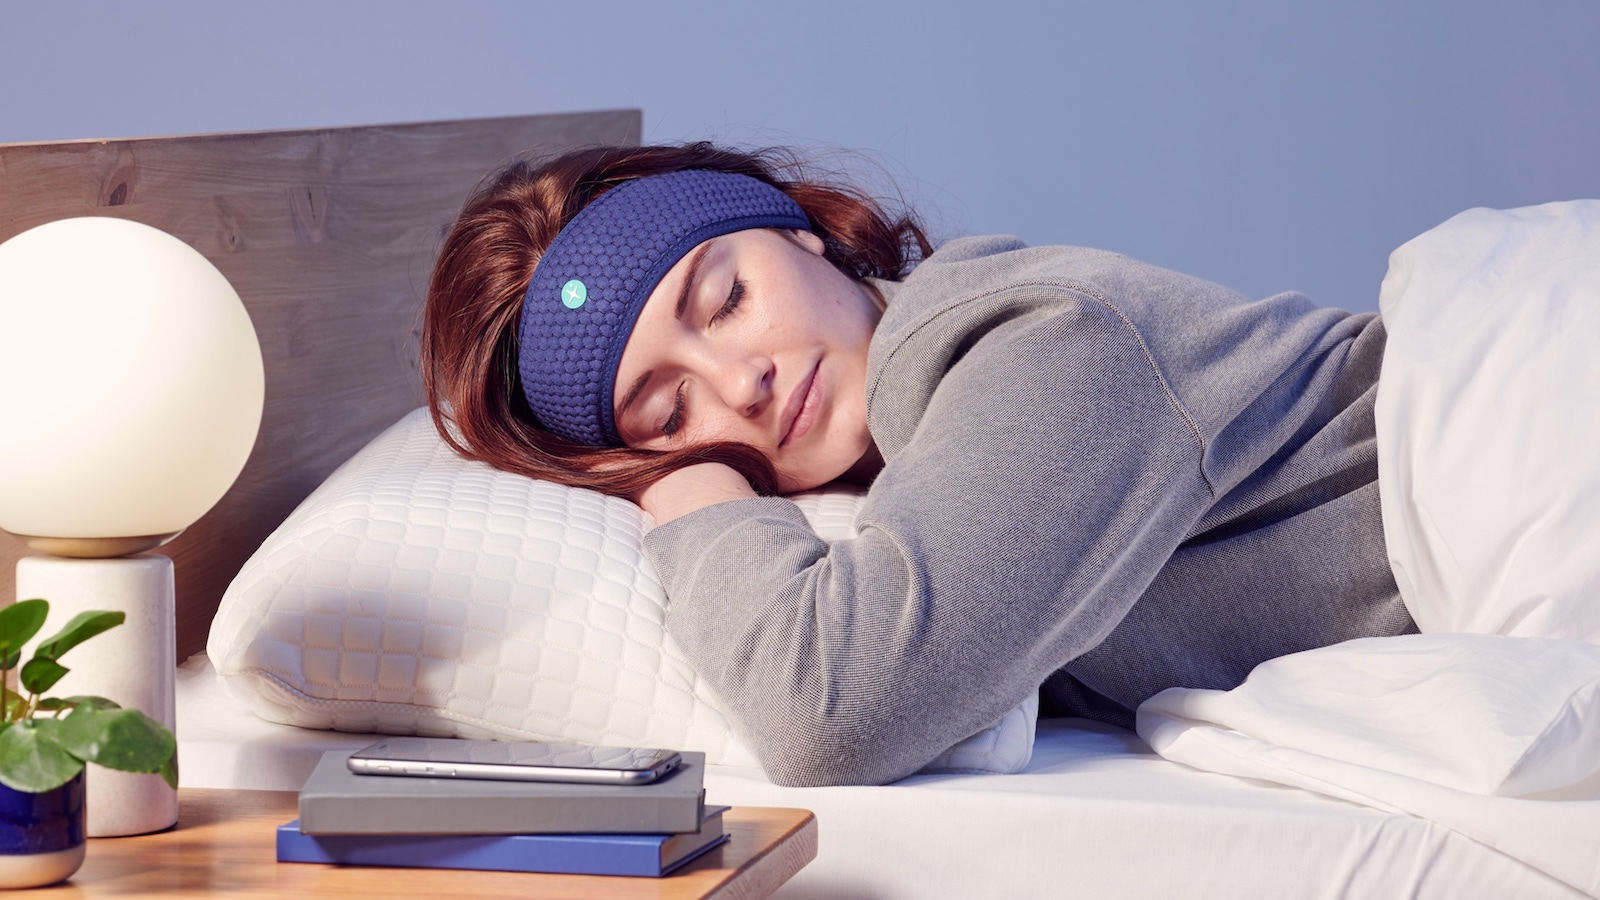 HoomBand audio bedtime headband plays guided meditations and more to help you fall asleep